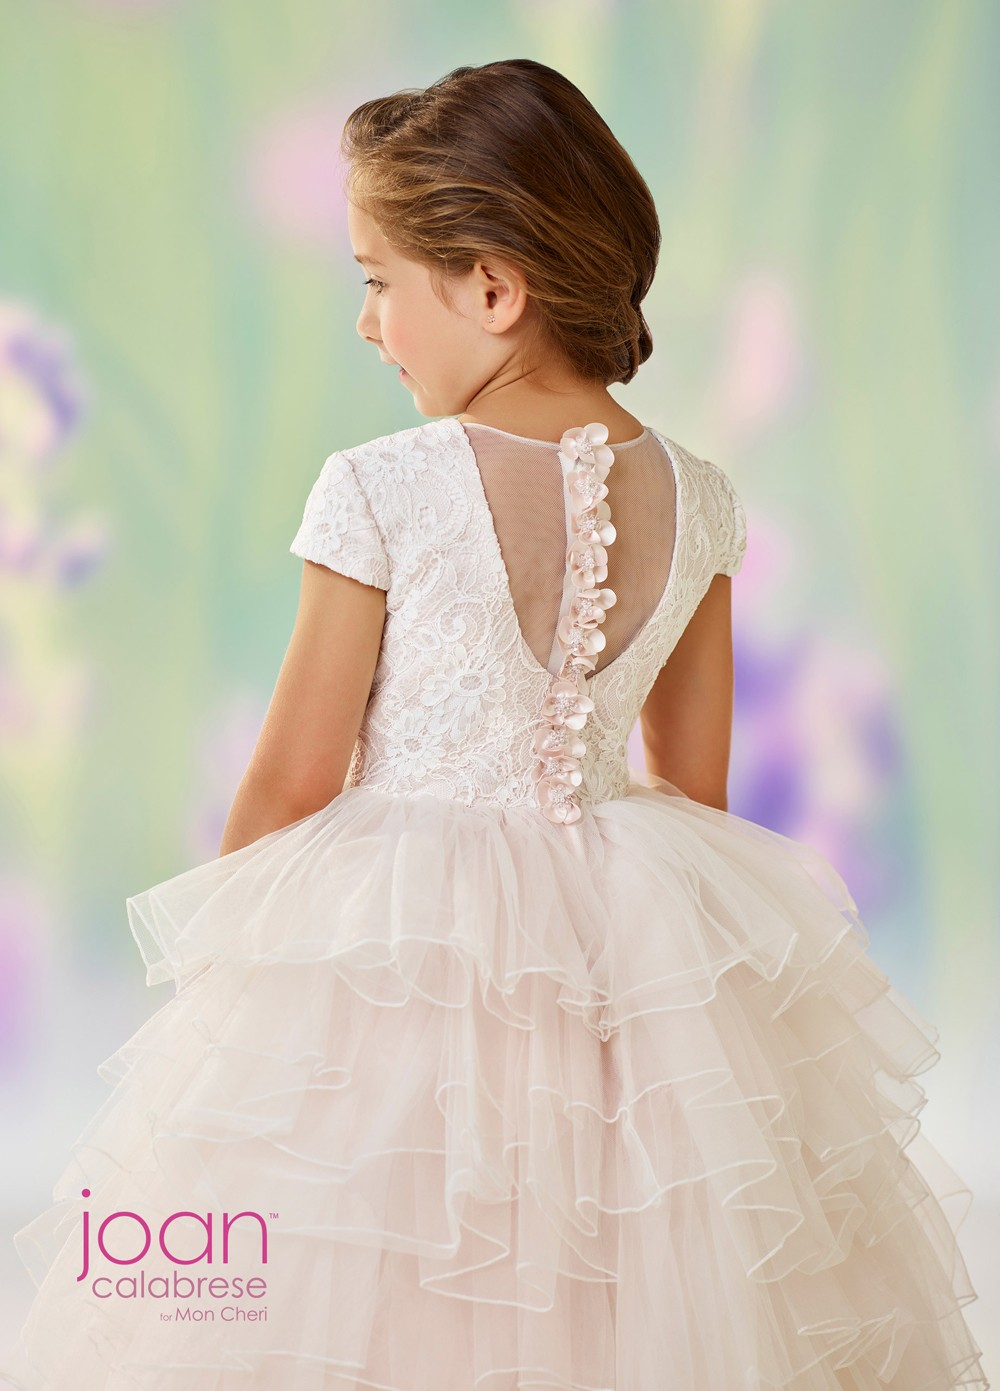 16828c45356 Tap to expand · Joan Calabrese 118329 Tiered Skirt Flower Girl Dress Joan  Calabrese 118329 Tiered Skirt Flower Girl Dress ...